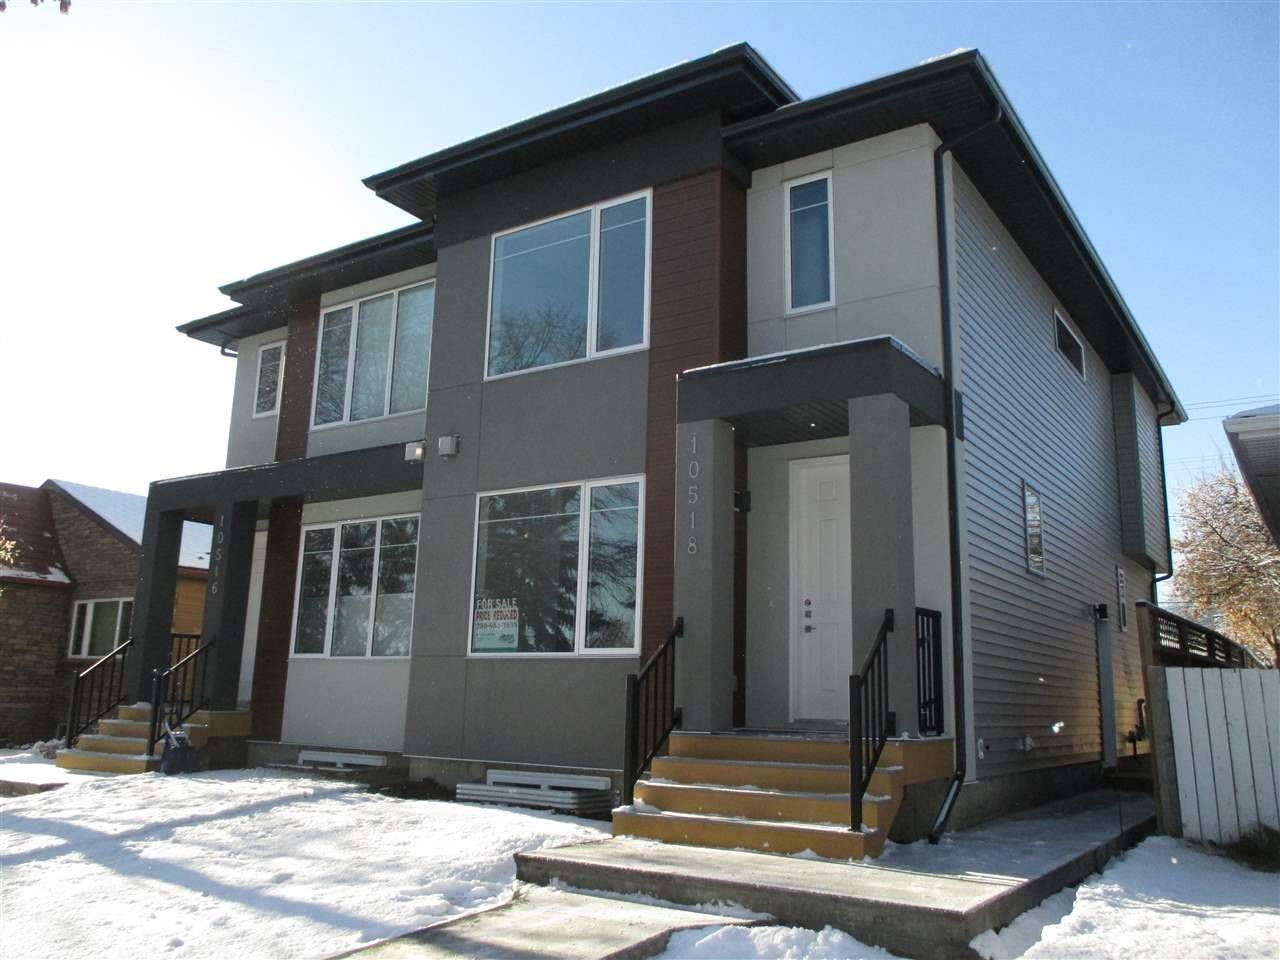 Townhouse for sale at 10518 76 St Nw Edmonton Alberta - MLS: E4142876